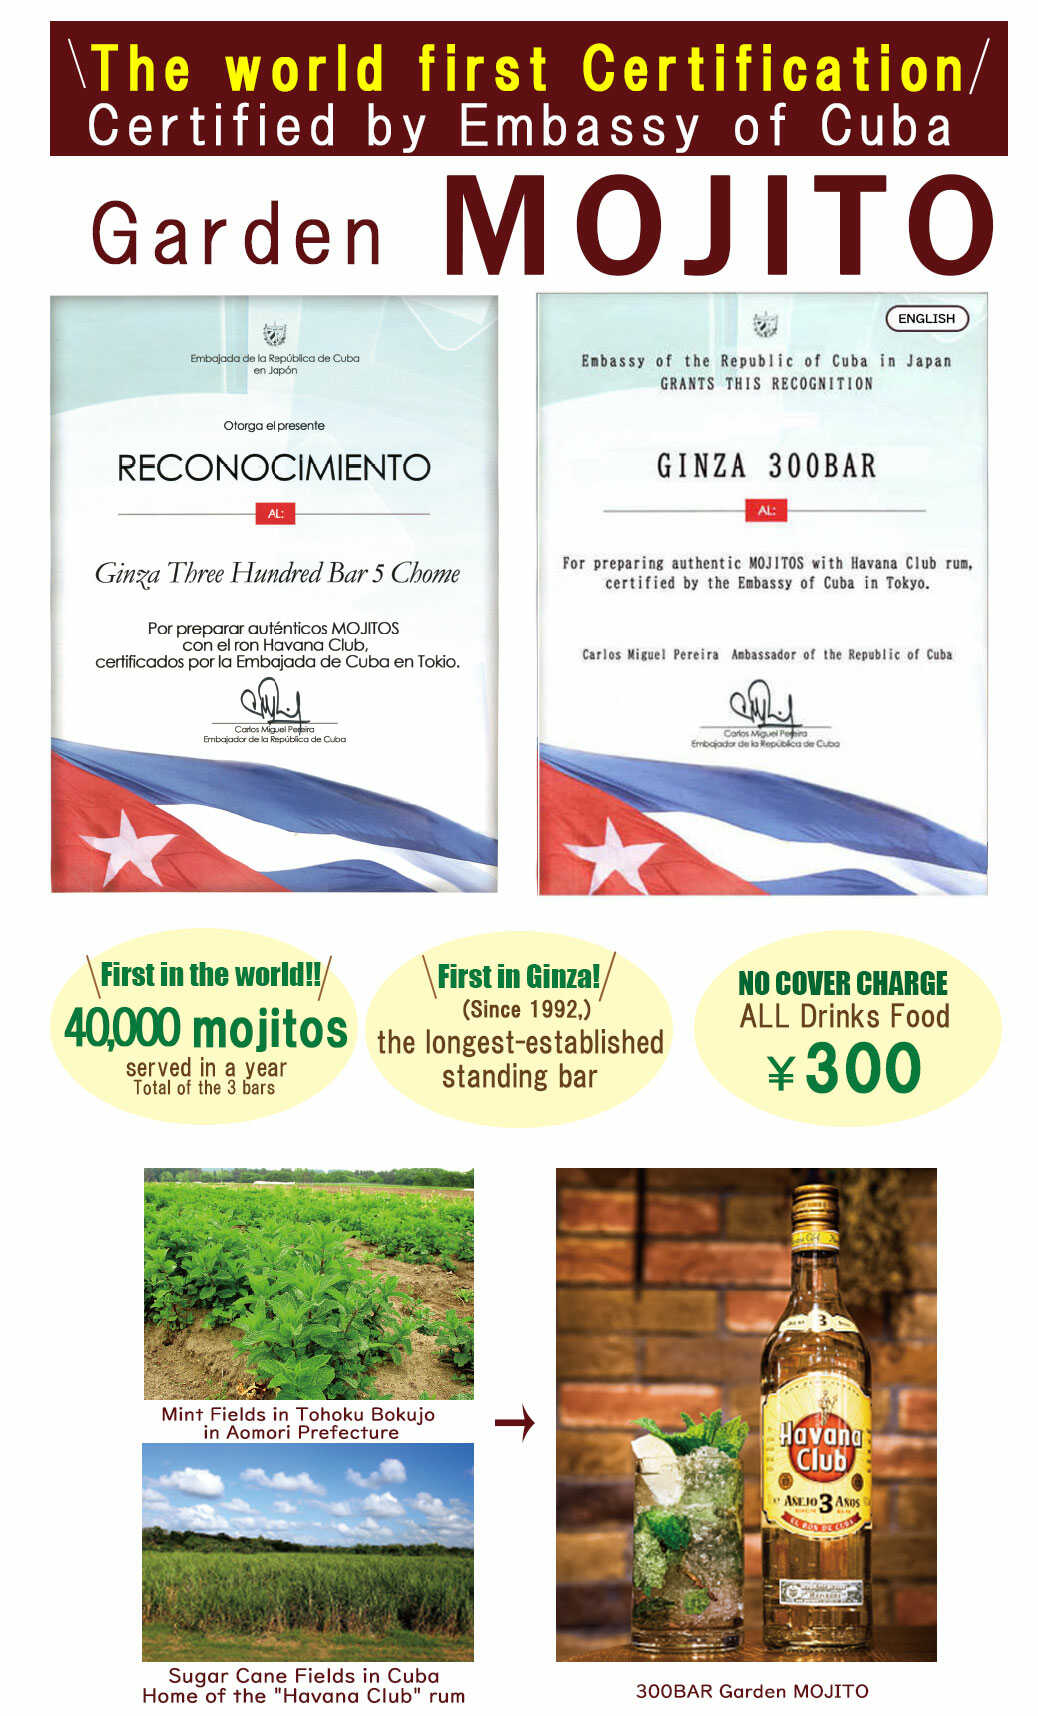 First in the world!Certified by Embassy of Cuba!MOJITO in 300BAR